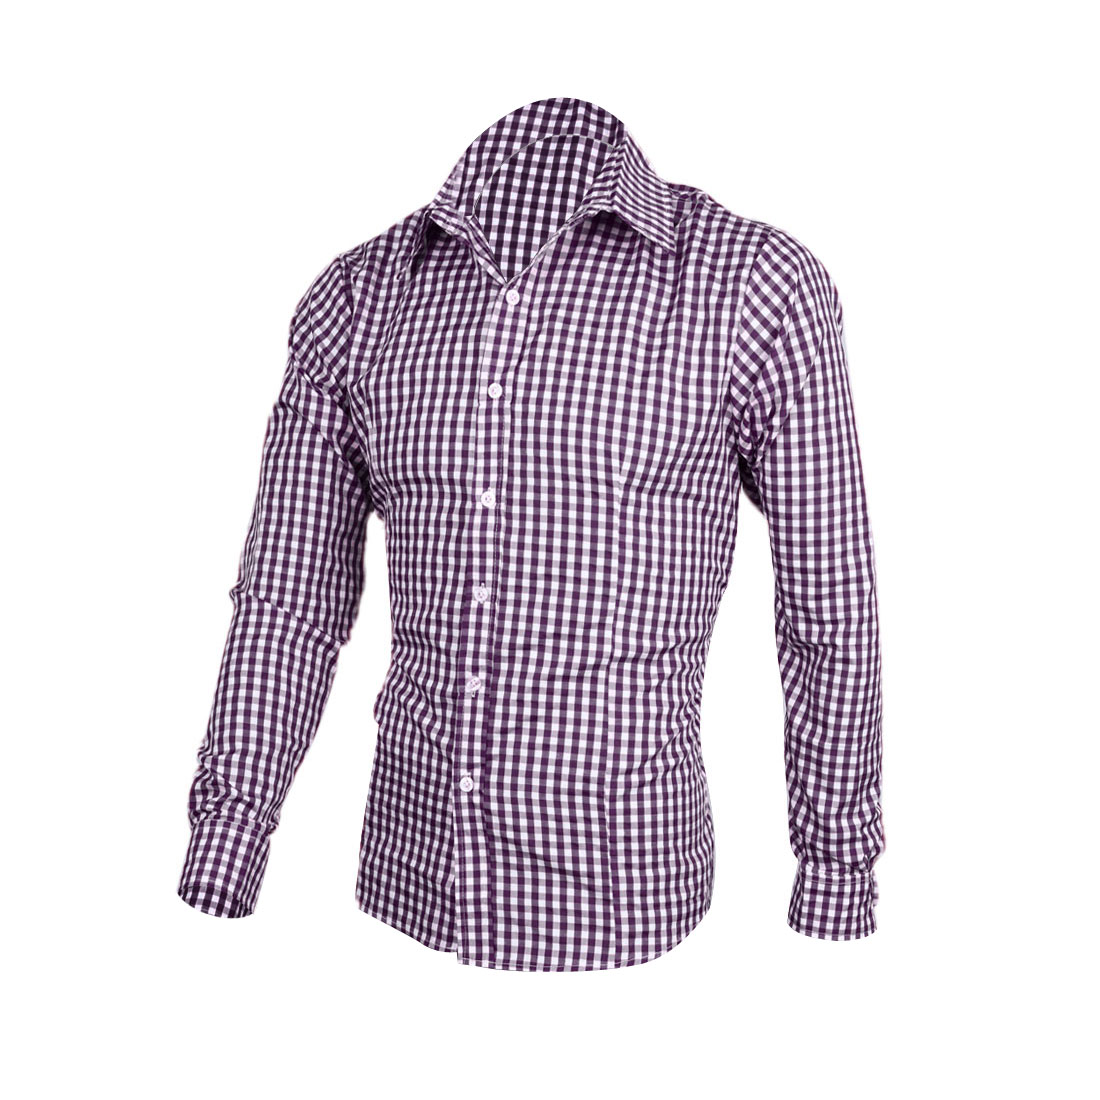 Man Long Sleeve Point Collar Check Pattern Shirt White Purple M